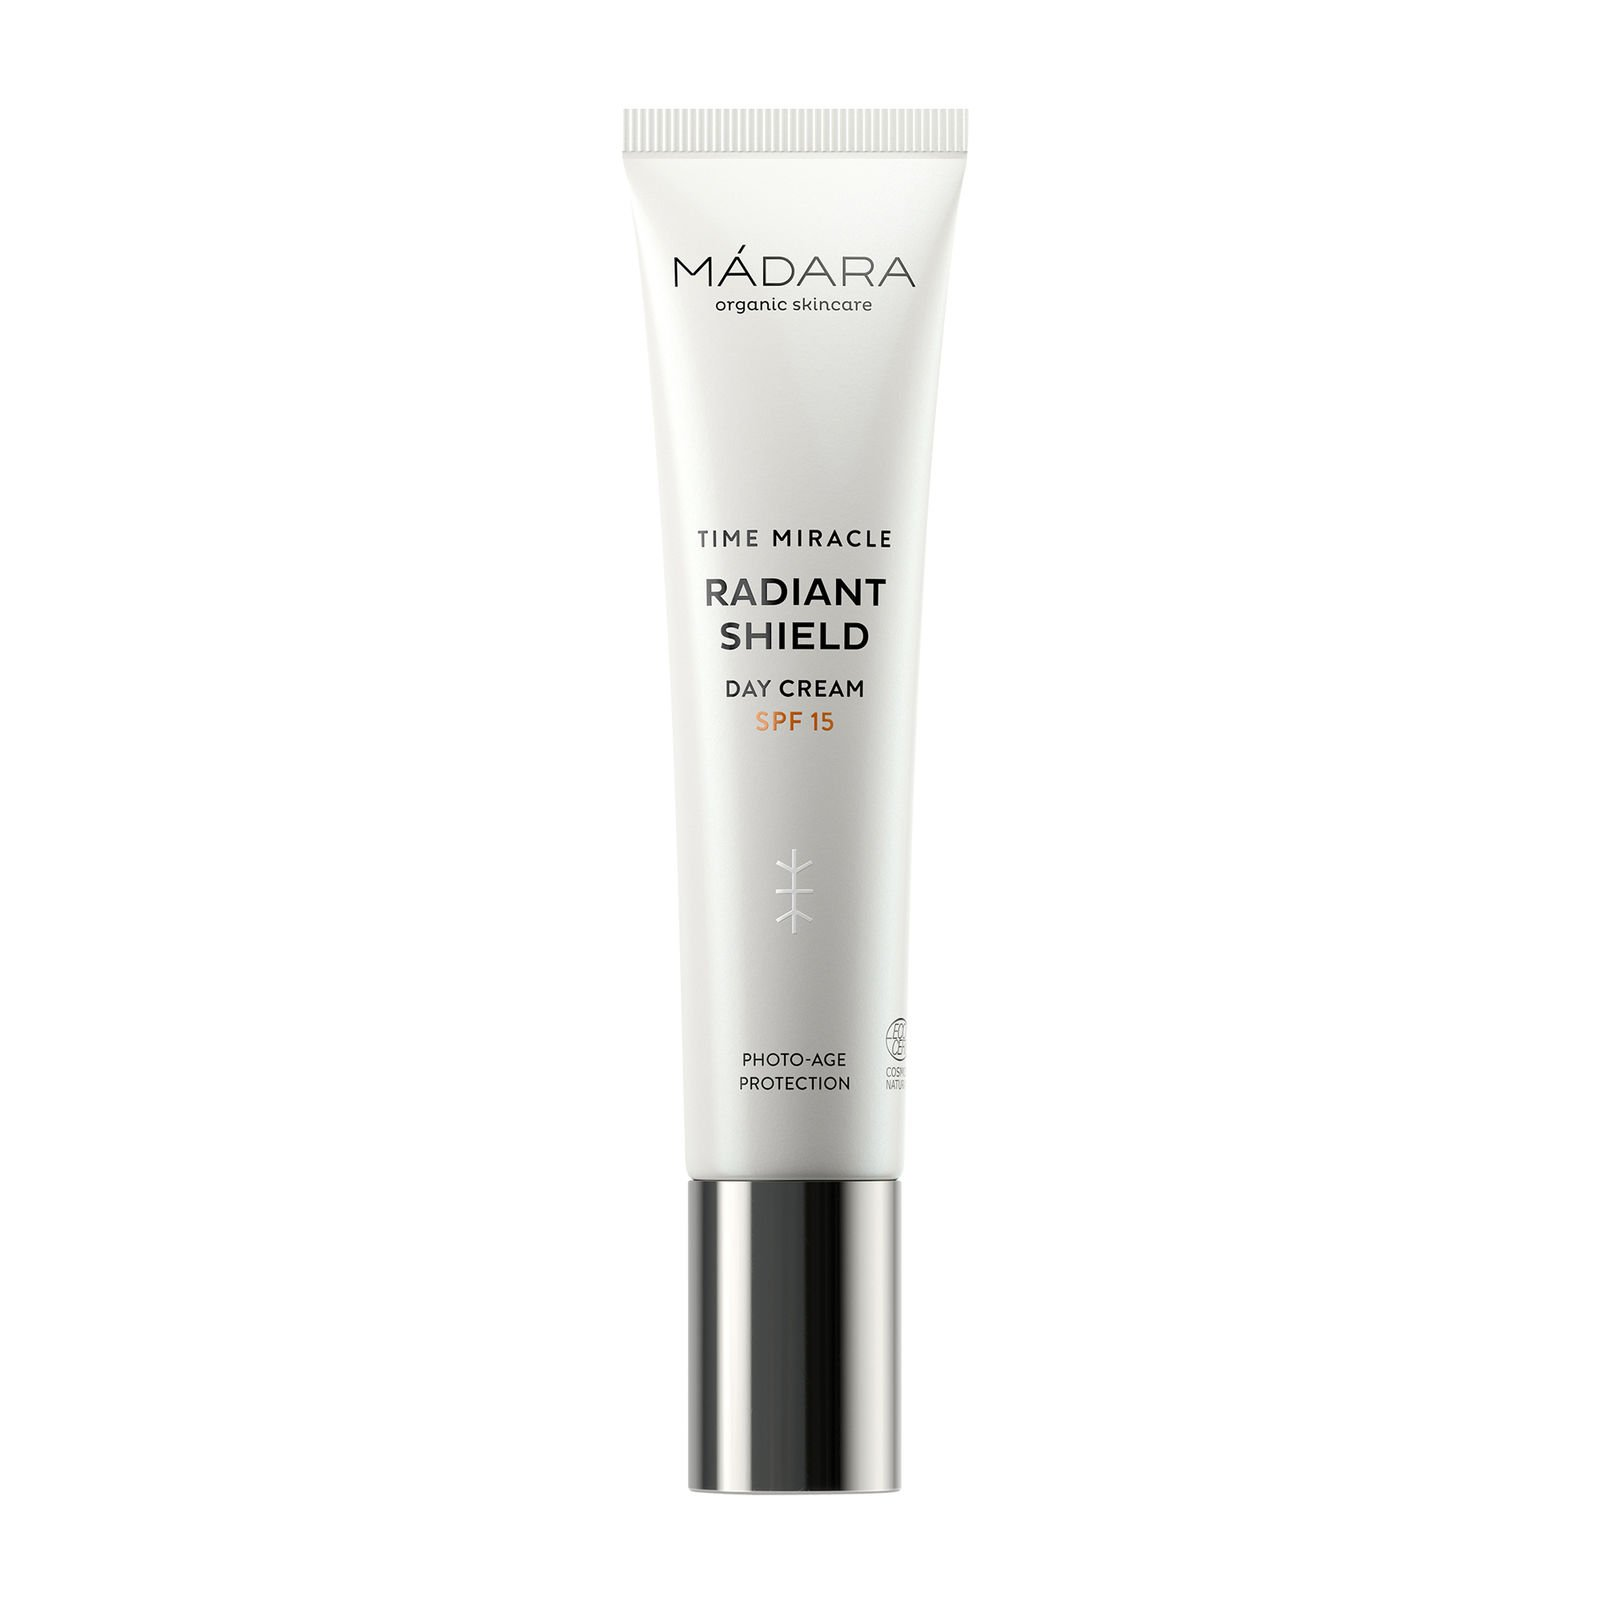 Mádara - Time Miracle Radiant Shield Day Cream SPF15 40 ml